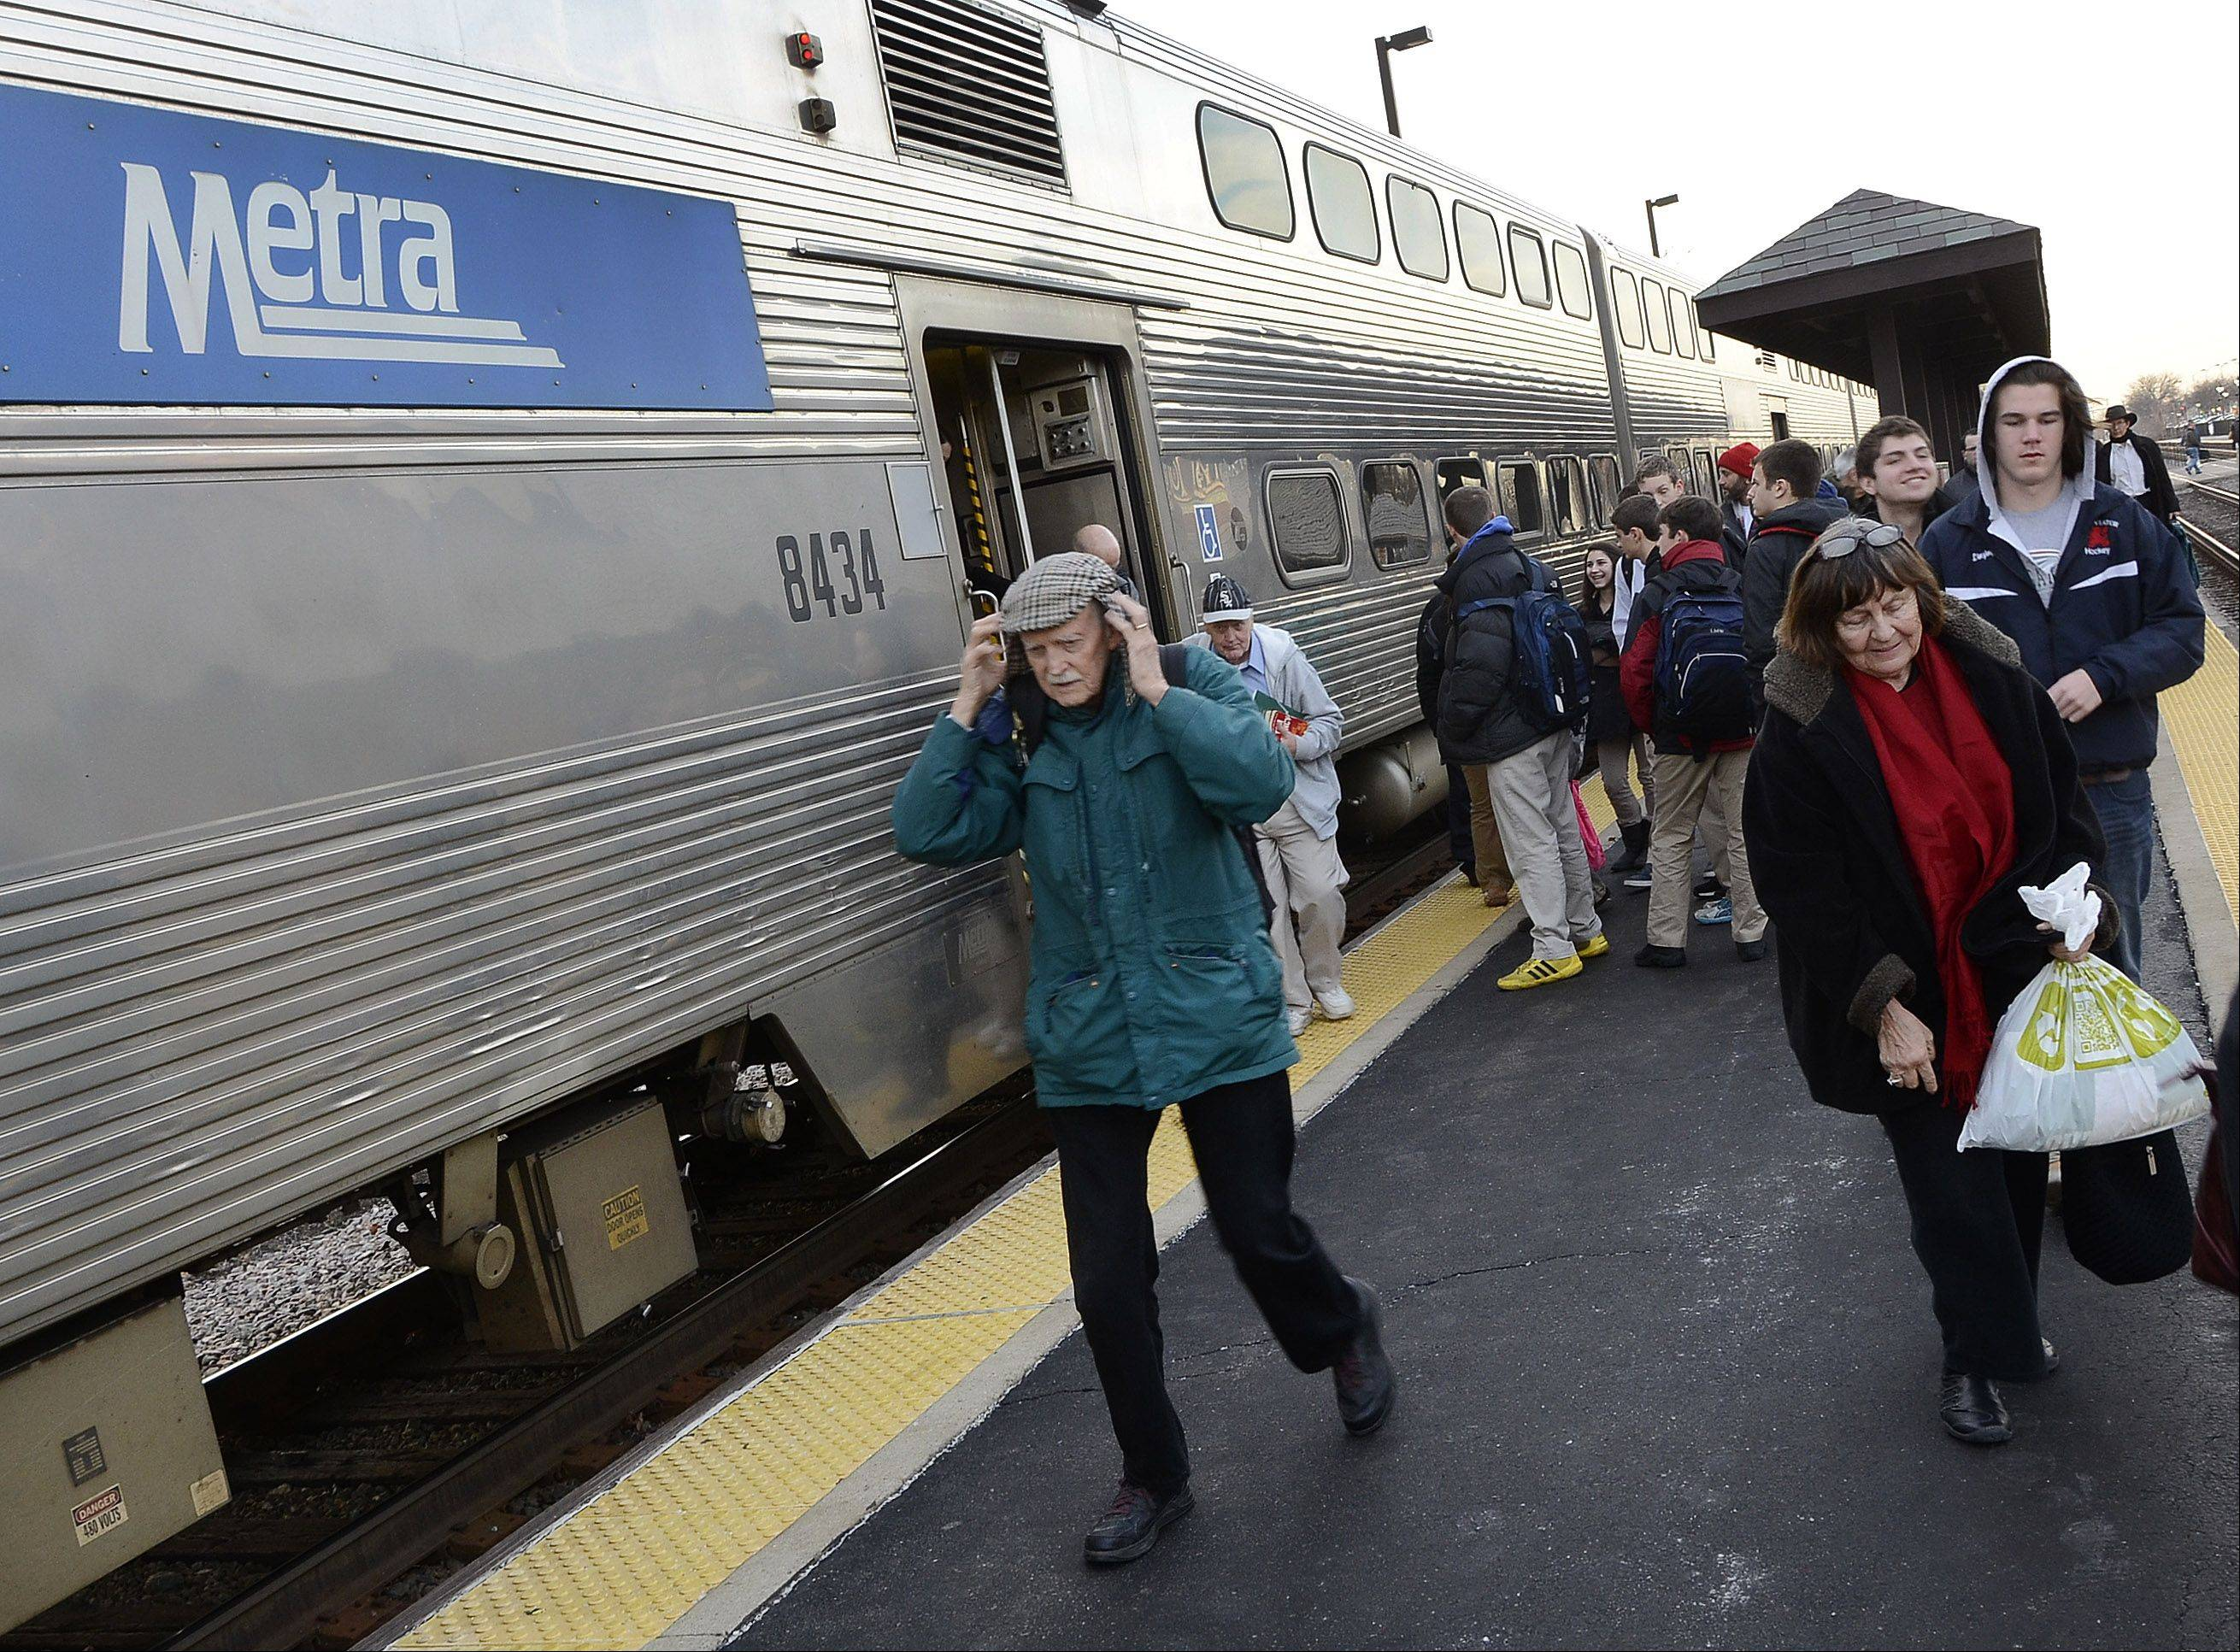 Metra raises fares for passengers using 10-ride passes